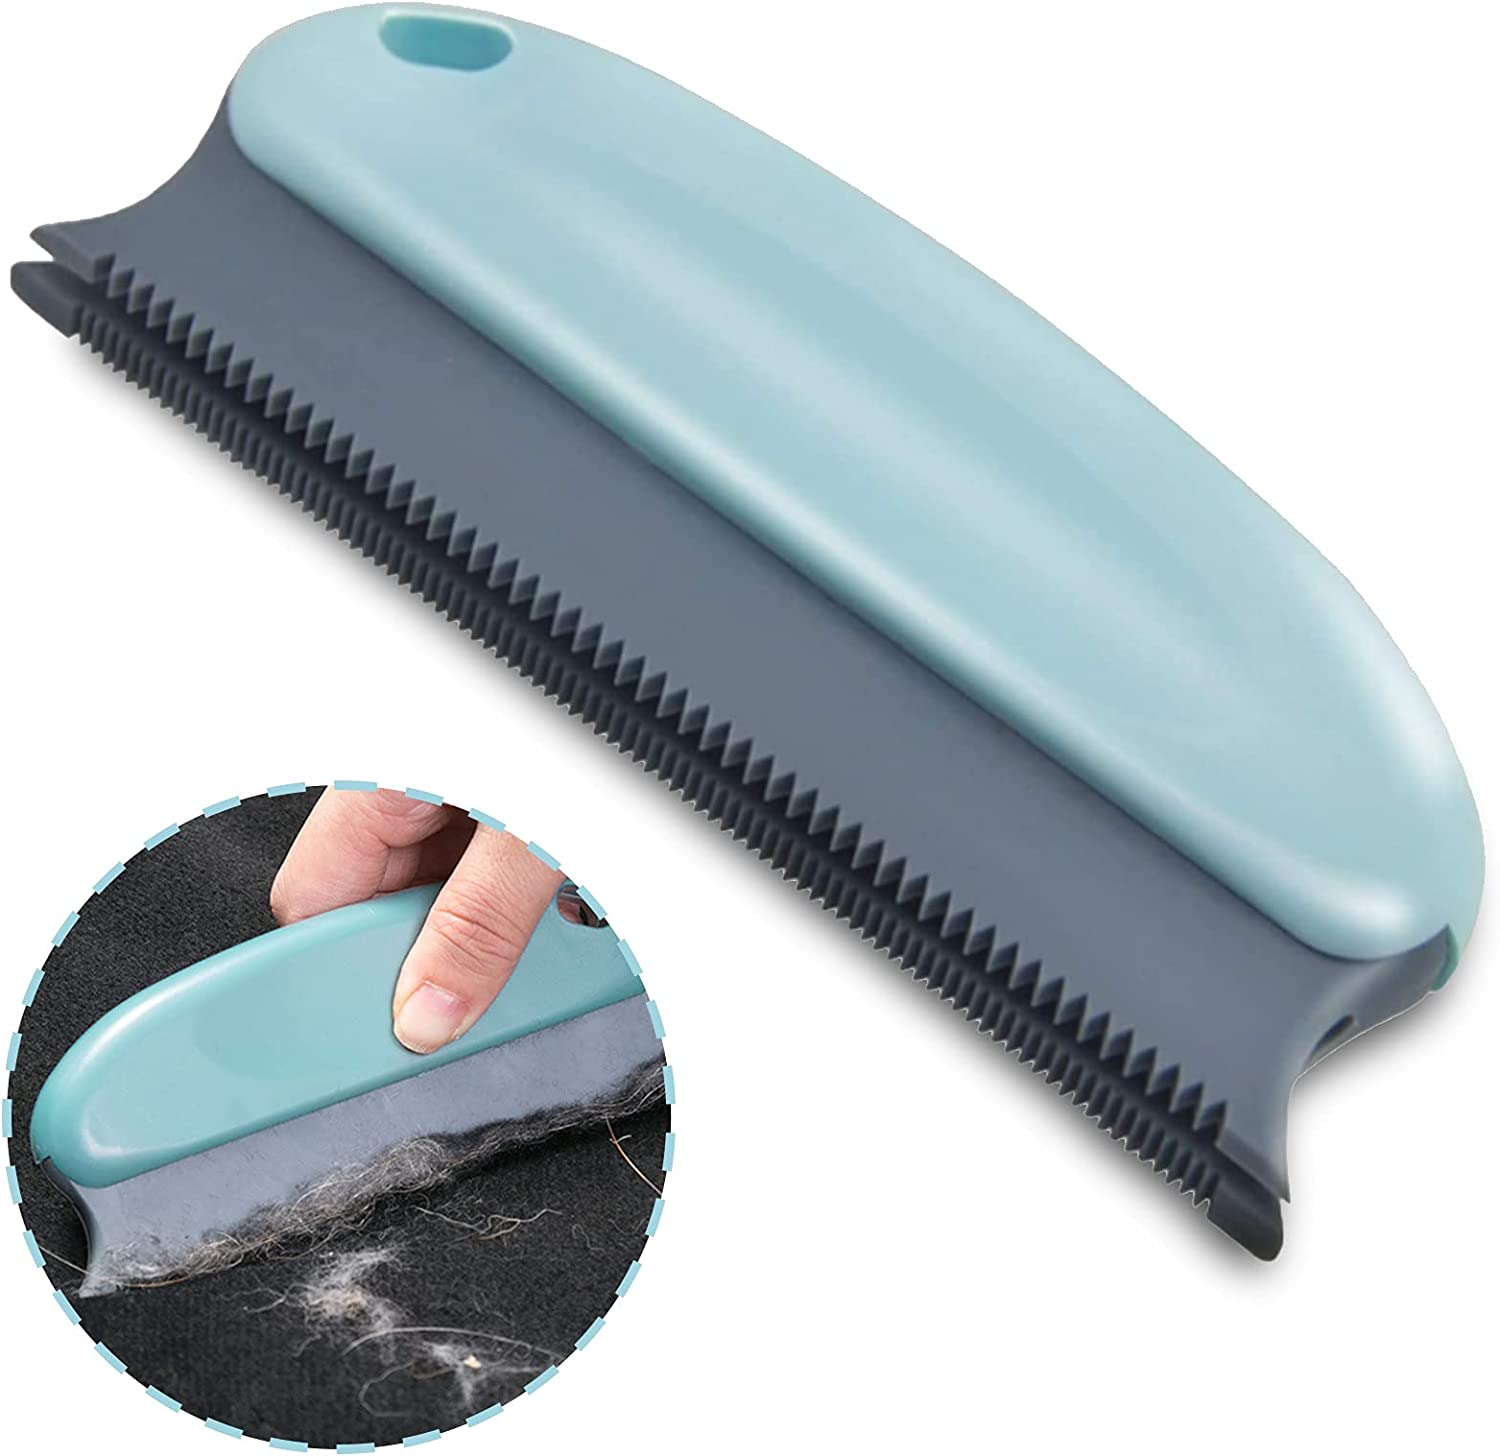 PETDOM Pet Hair Remover Rubber Brush - 6 Inch Long Double Row Comb Teeth and Anti-Slip Handle - Easy to Remove Cat Dog Hair & Lint from Carpet, Cat Tree, Pet Bed and Pet Furniture